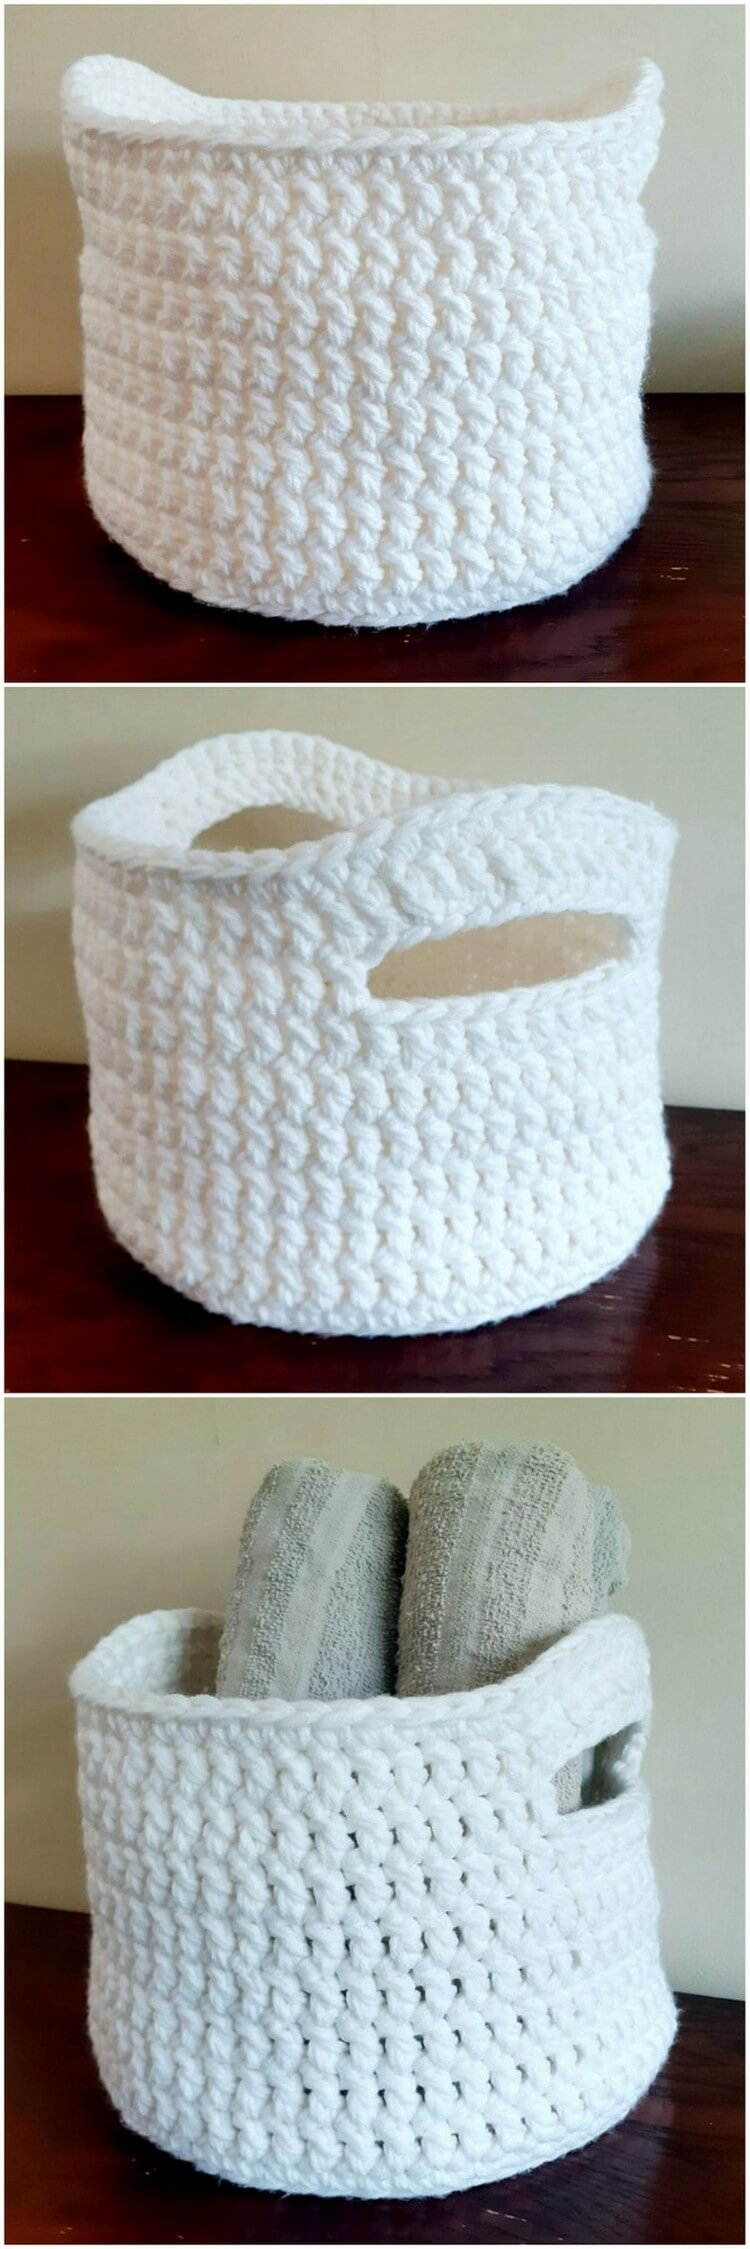 Crochet Basket Pattern (30)